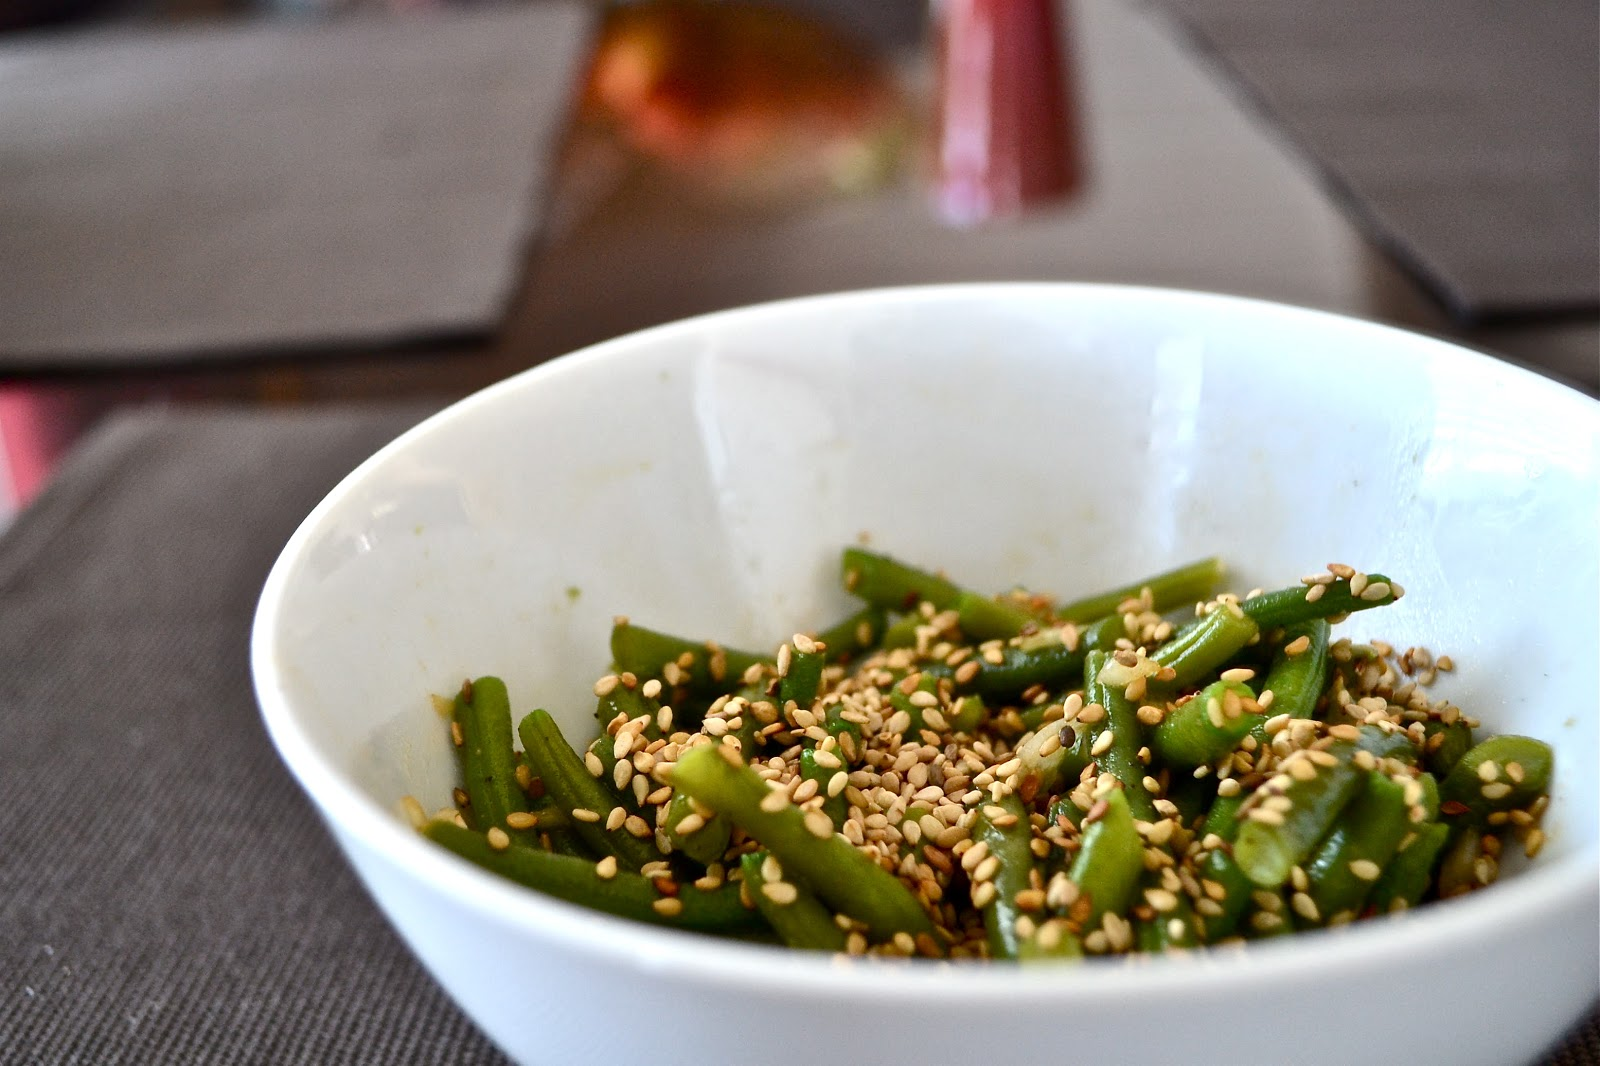 Cooking for a Smile: Warm Green Bean Salad